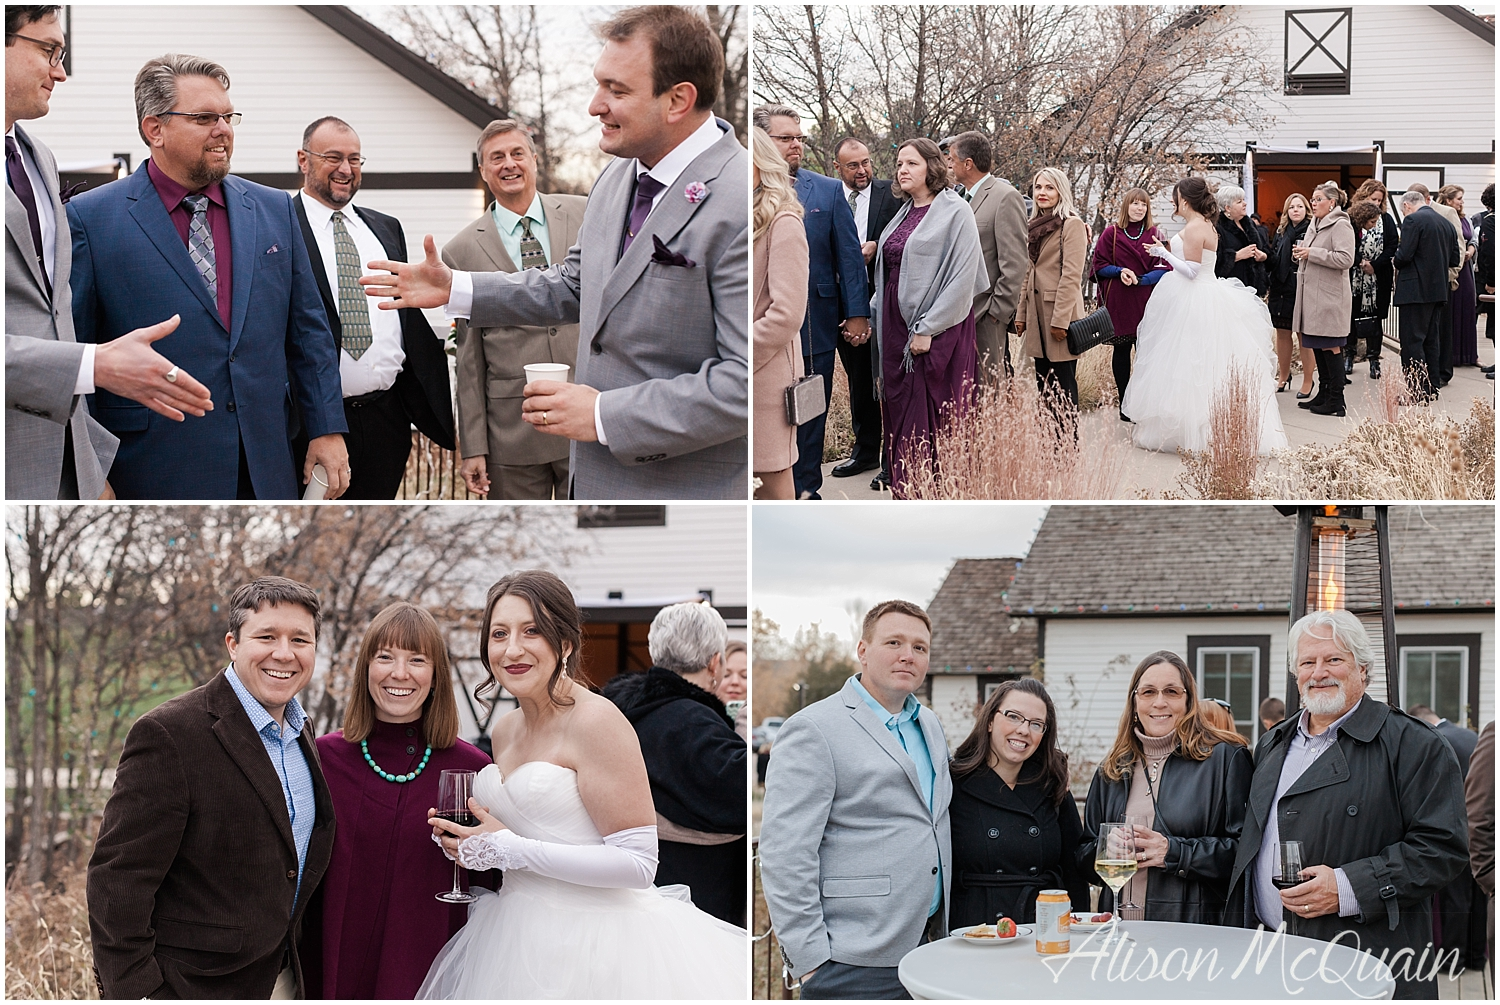 Zako_Wedding_ChatfieldFarm_Denver_Fall_2018_AlisonMcQuainPhotography_0060.jpg